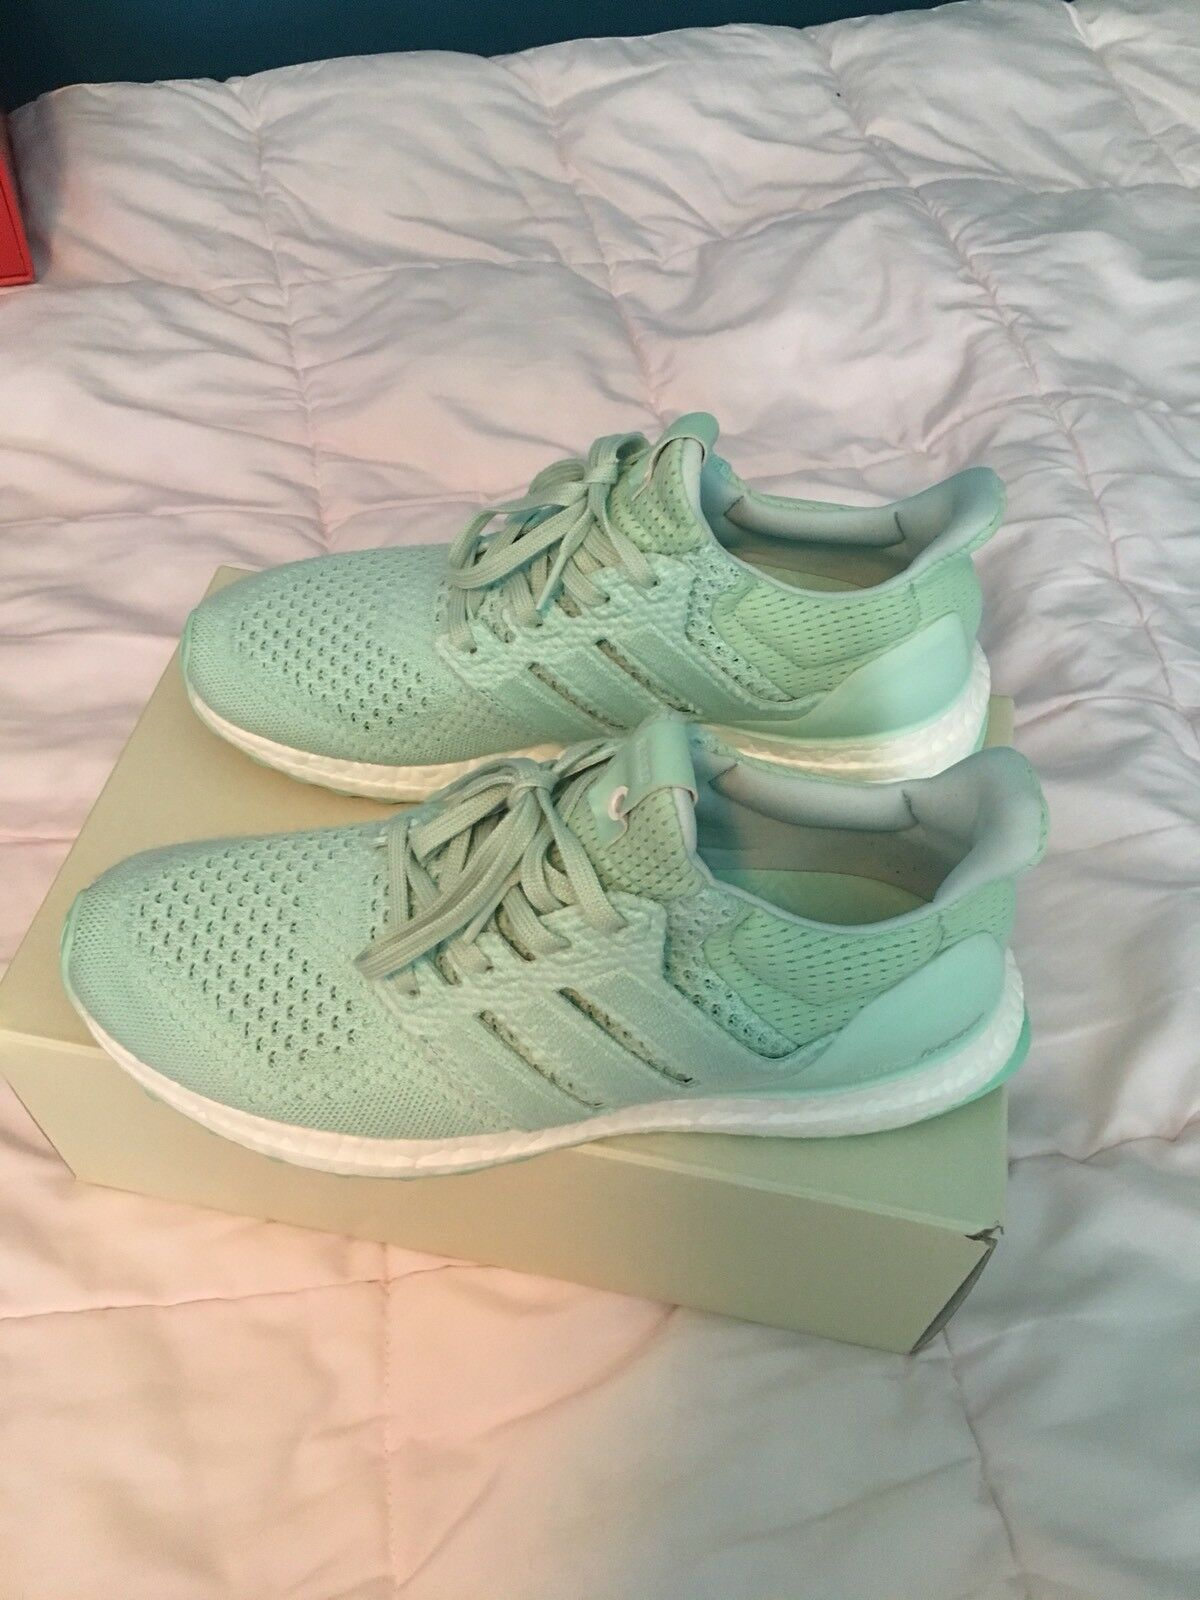 Adidas Ultra Boost 1.0 Naked Waves Pack Comfortable